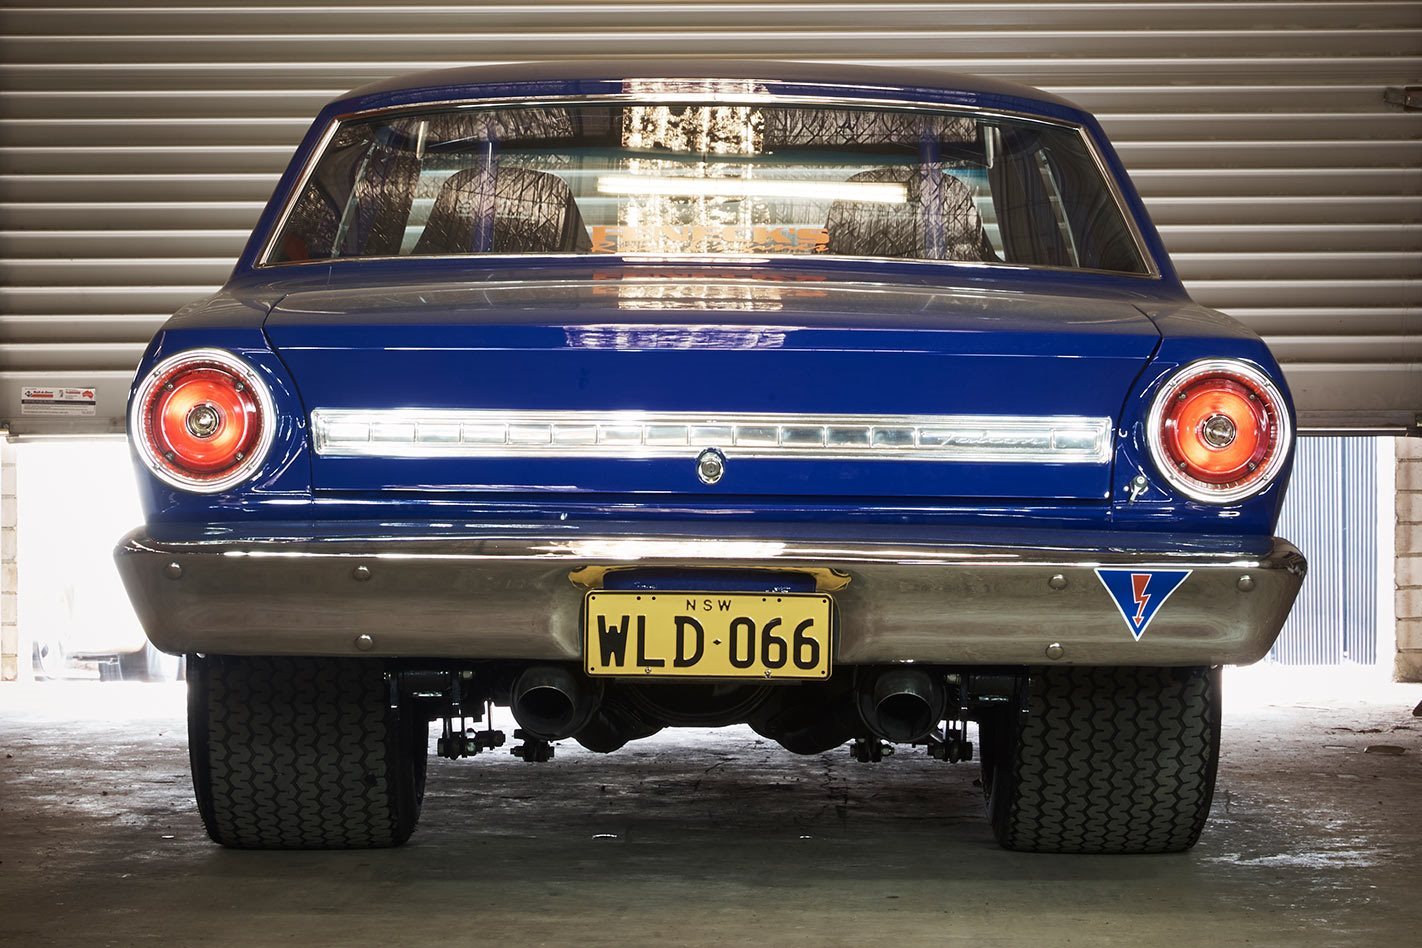 427-CUBE WINDSOR-POWERED 1966 FORD XR FUTURA SPORTS COUPE